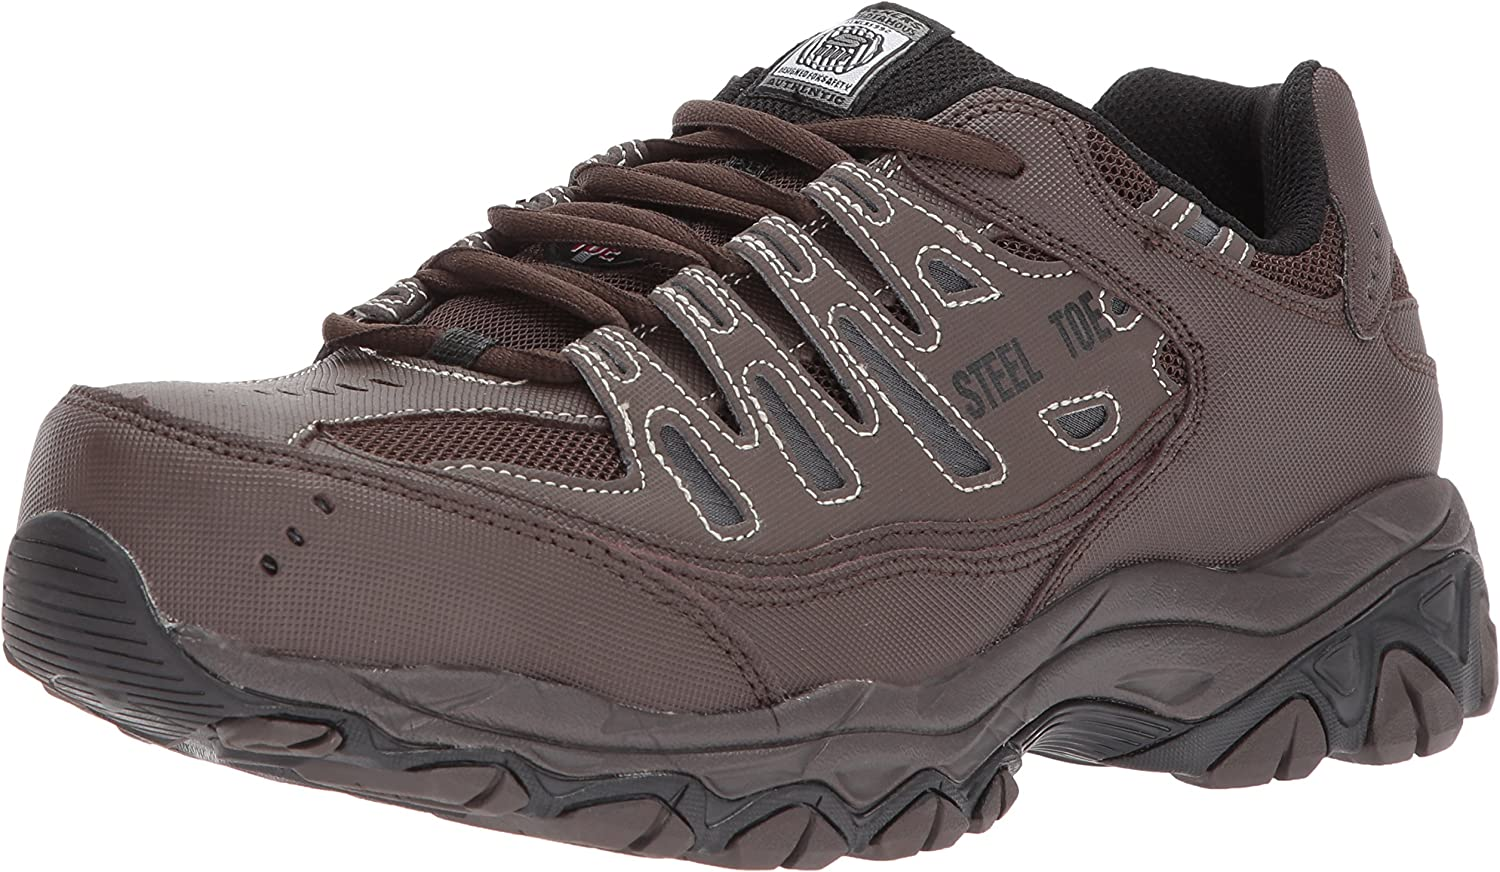 Skechers for Work Men's Cankton Industrial shoes,Brown,9 Medium US